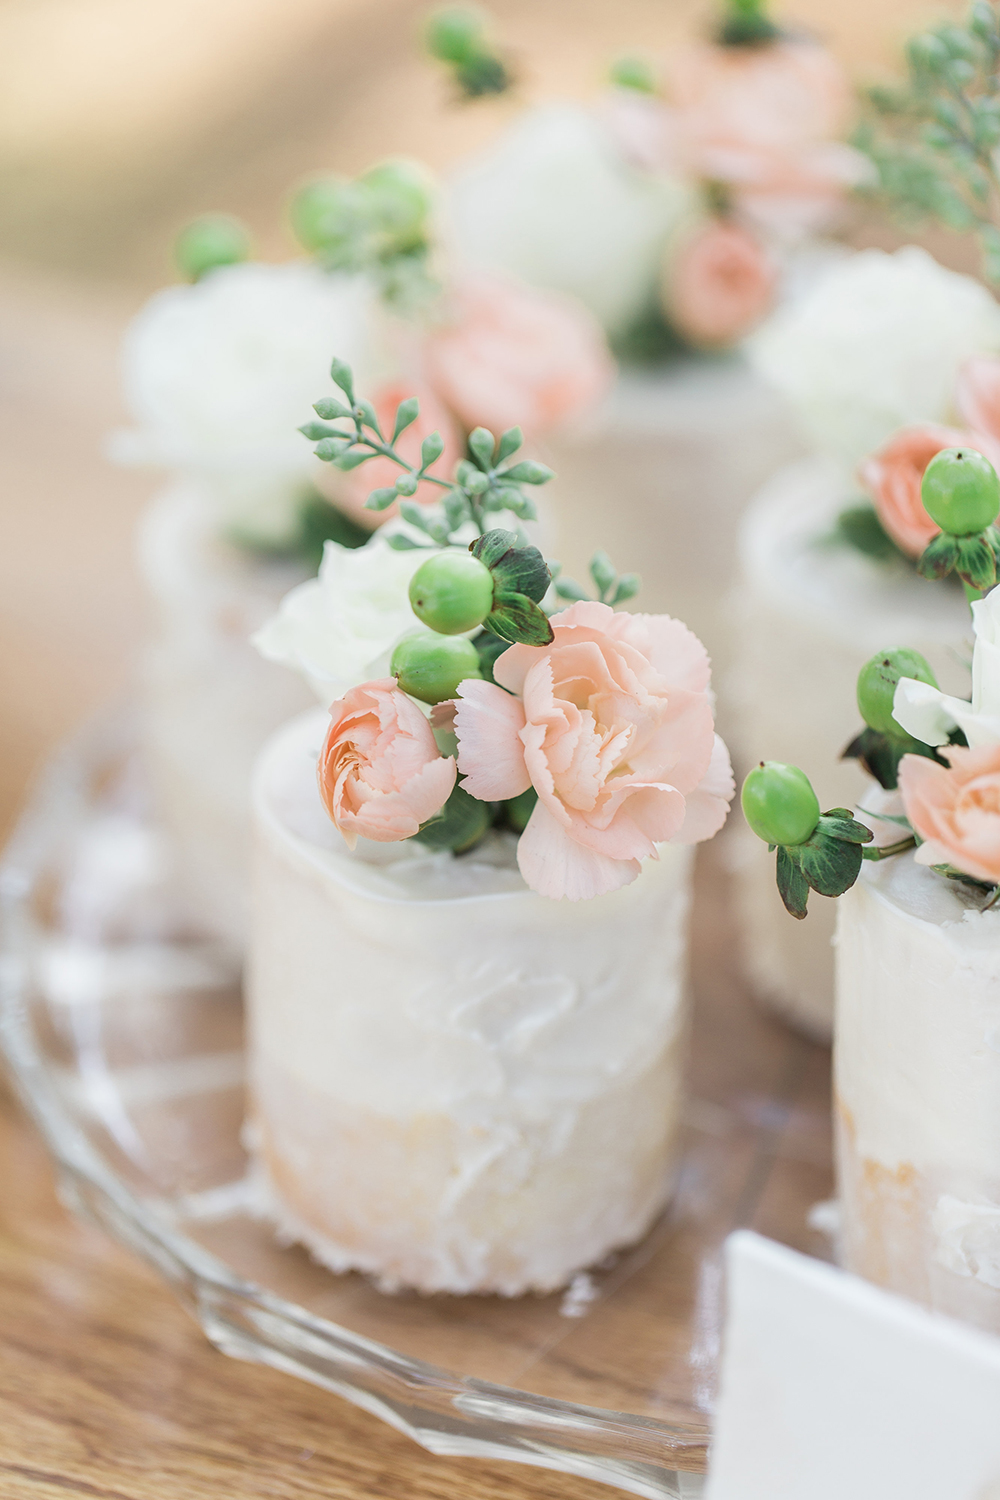 mini cakes - photo by Landon Hendrick Photography http://ruffledblog.com/southern-garden-chic-wedding-inspiration